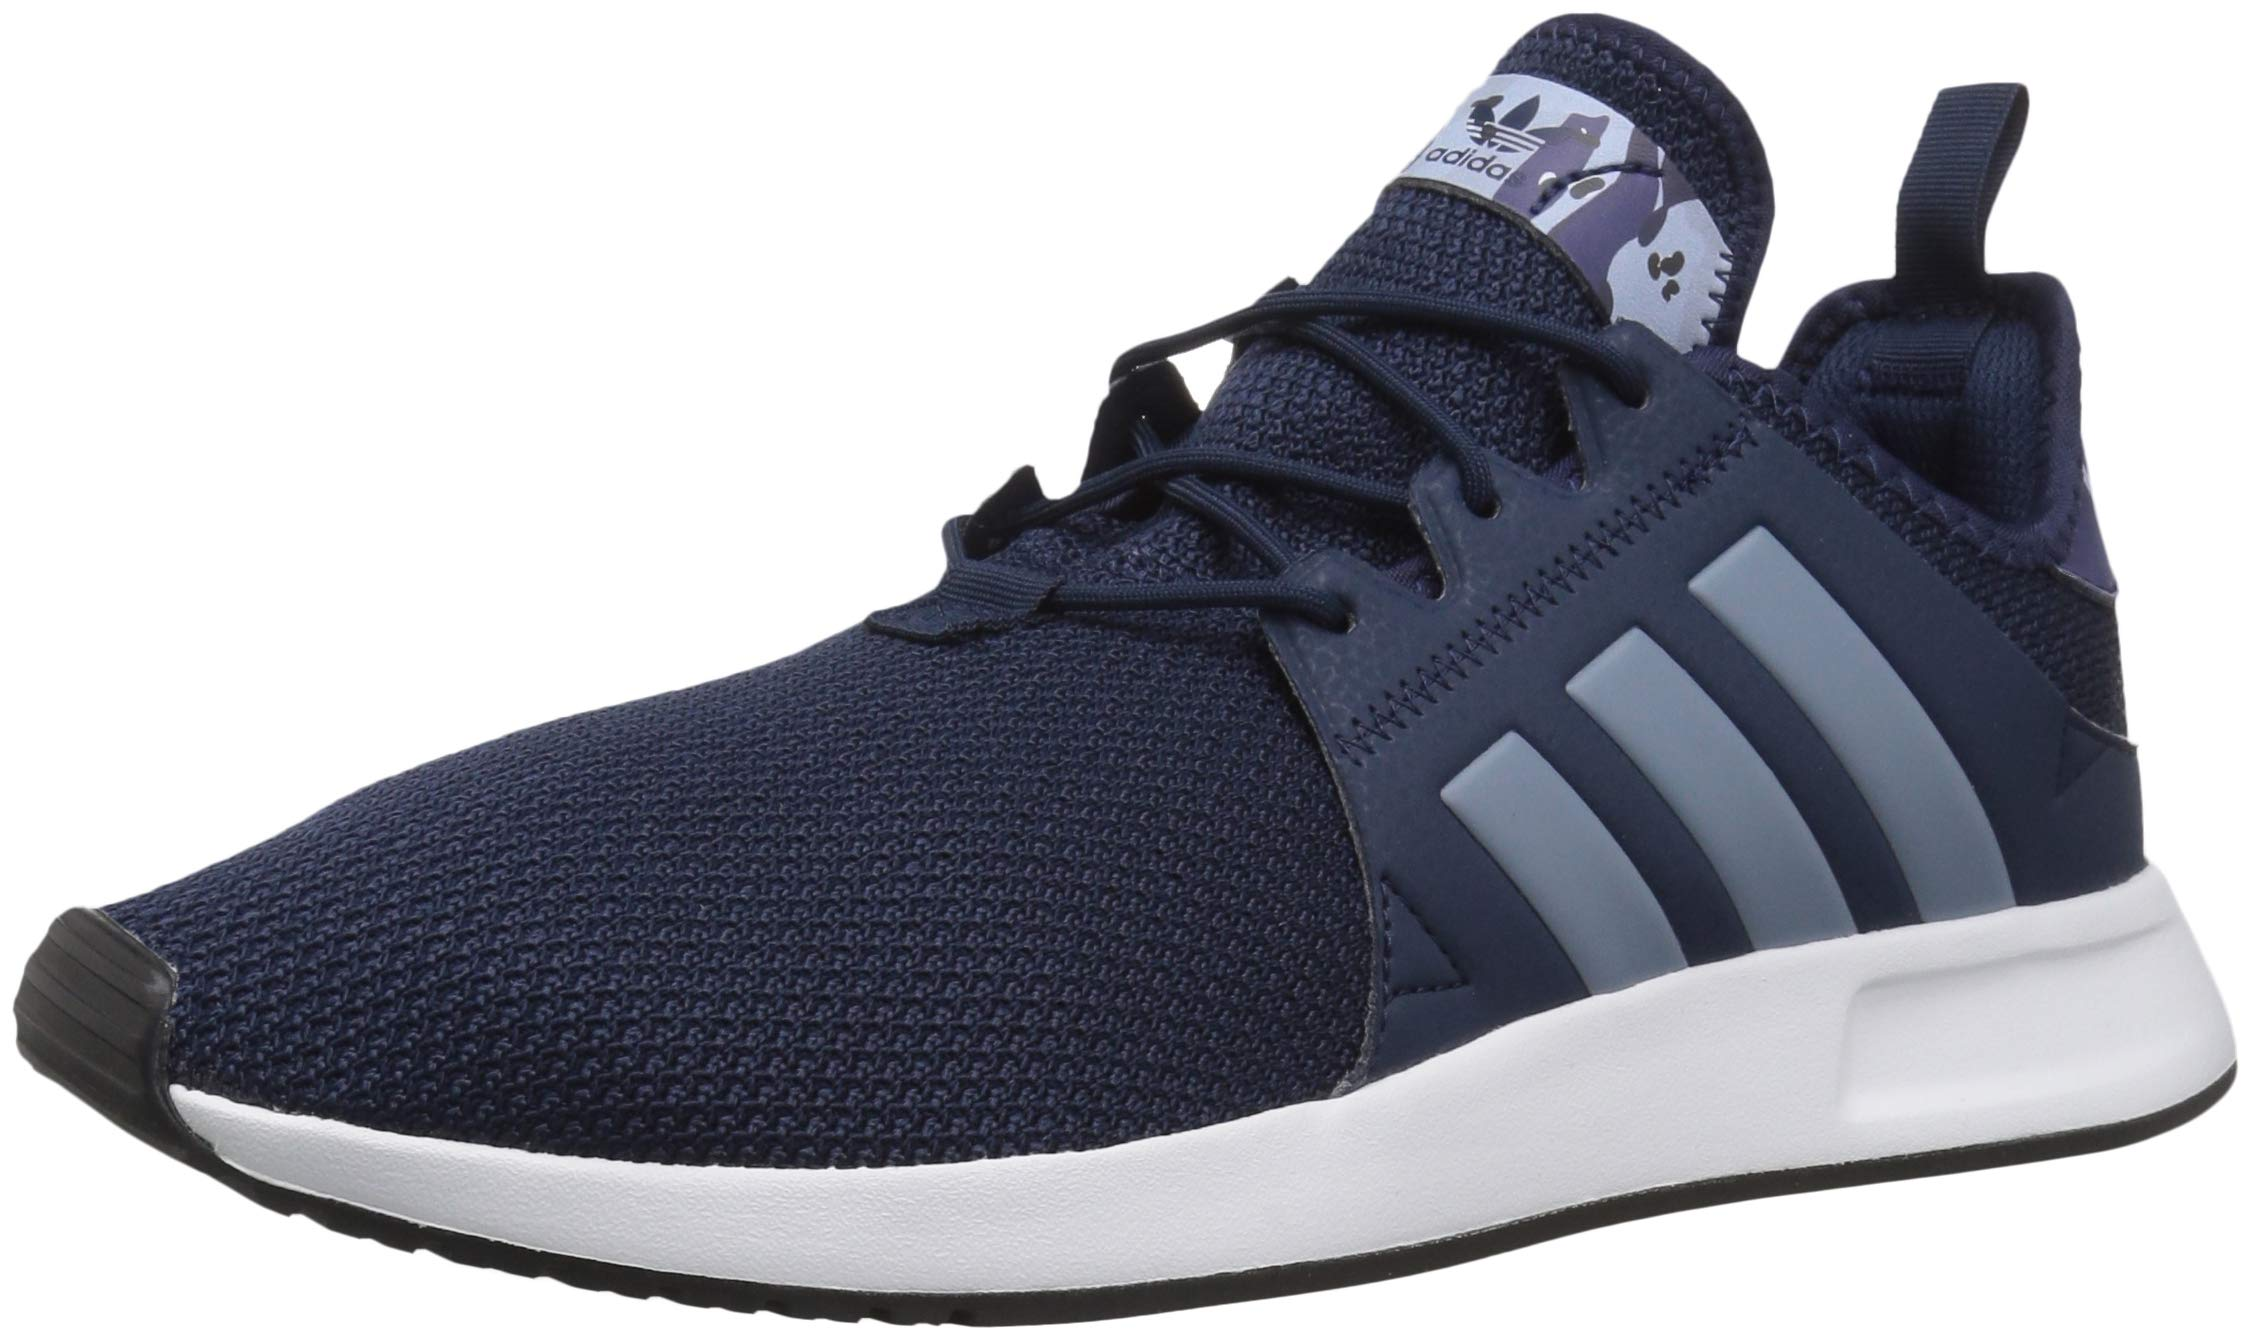 ad1f8936b1b Galleon - Adidas Originals Mens X PLR Running Shoe